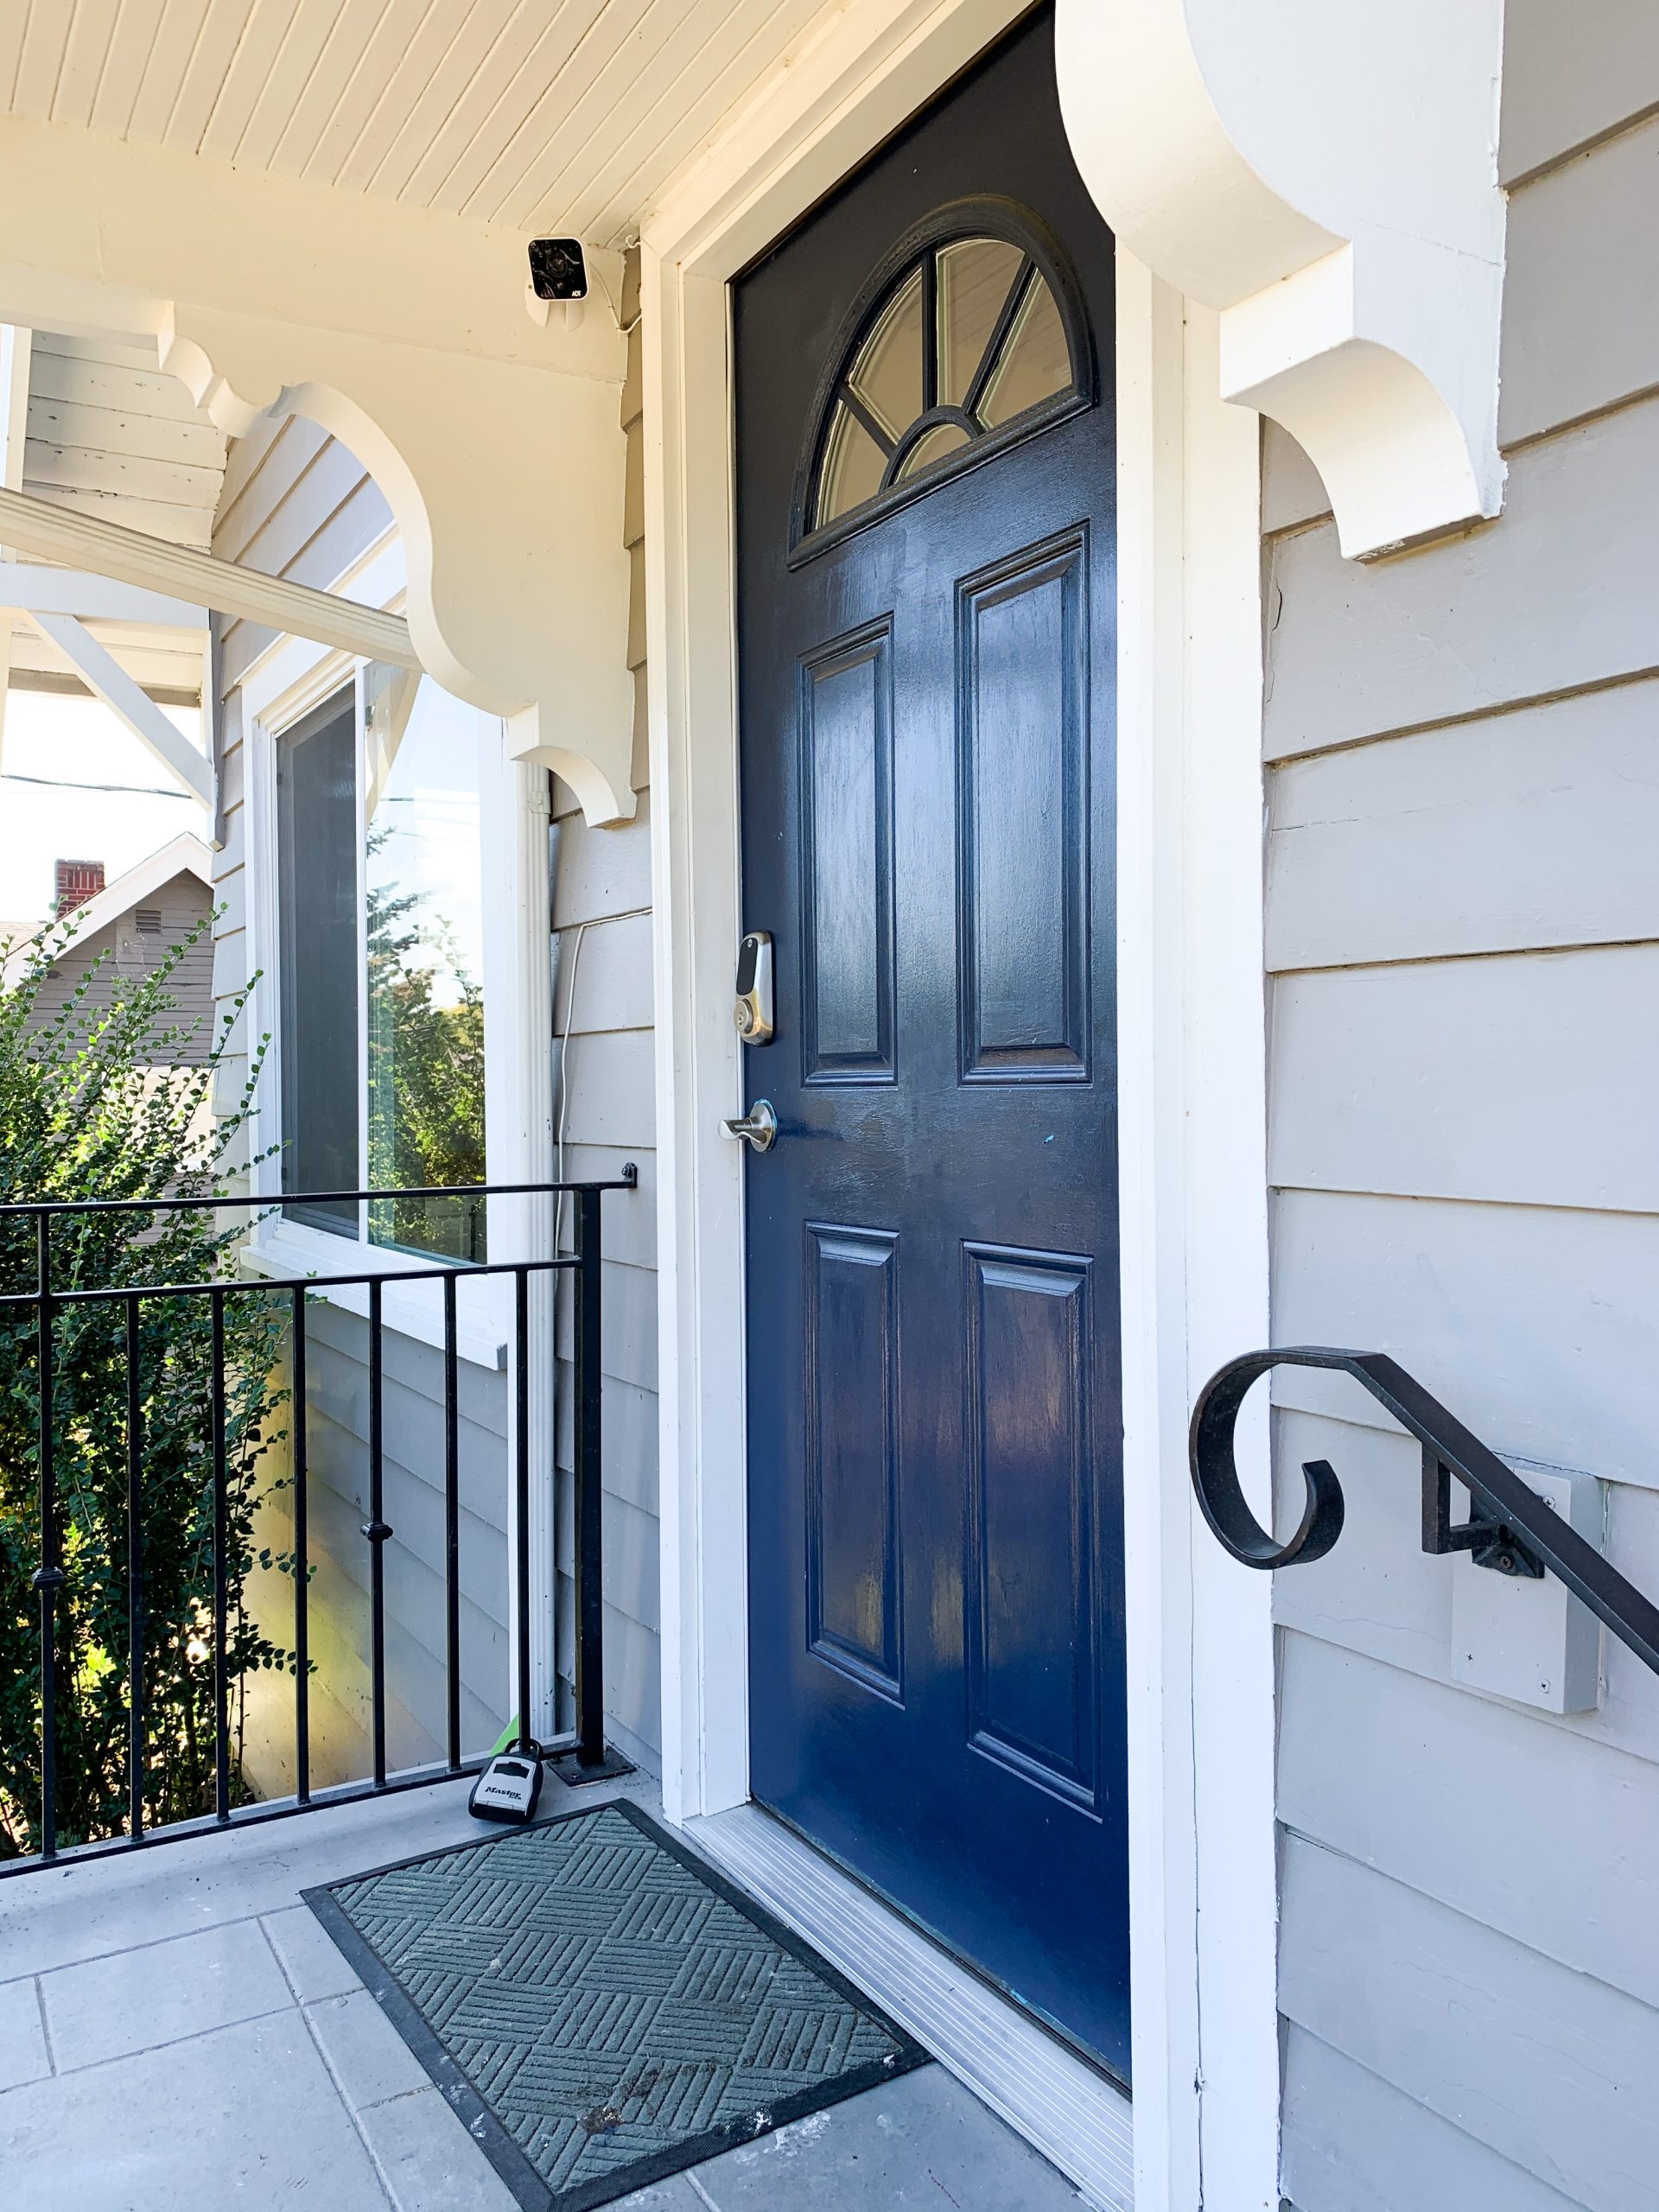 Benjamin Moore Silver Lake Chantilly Lace Exterior Paint Color .003